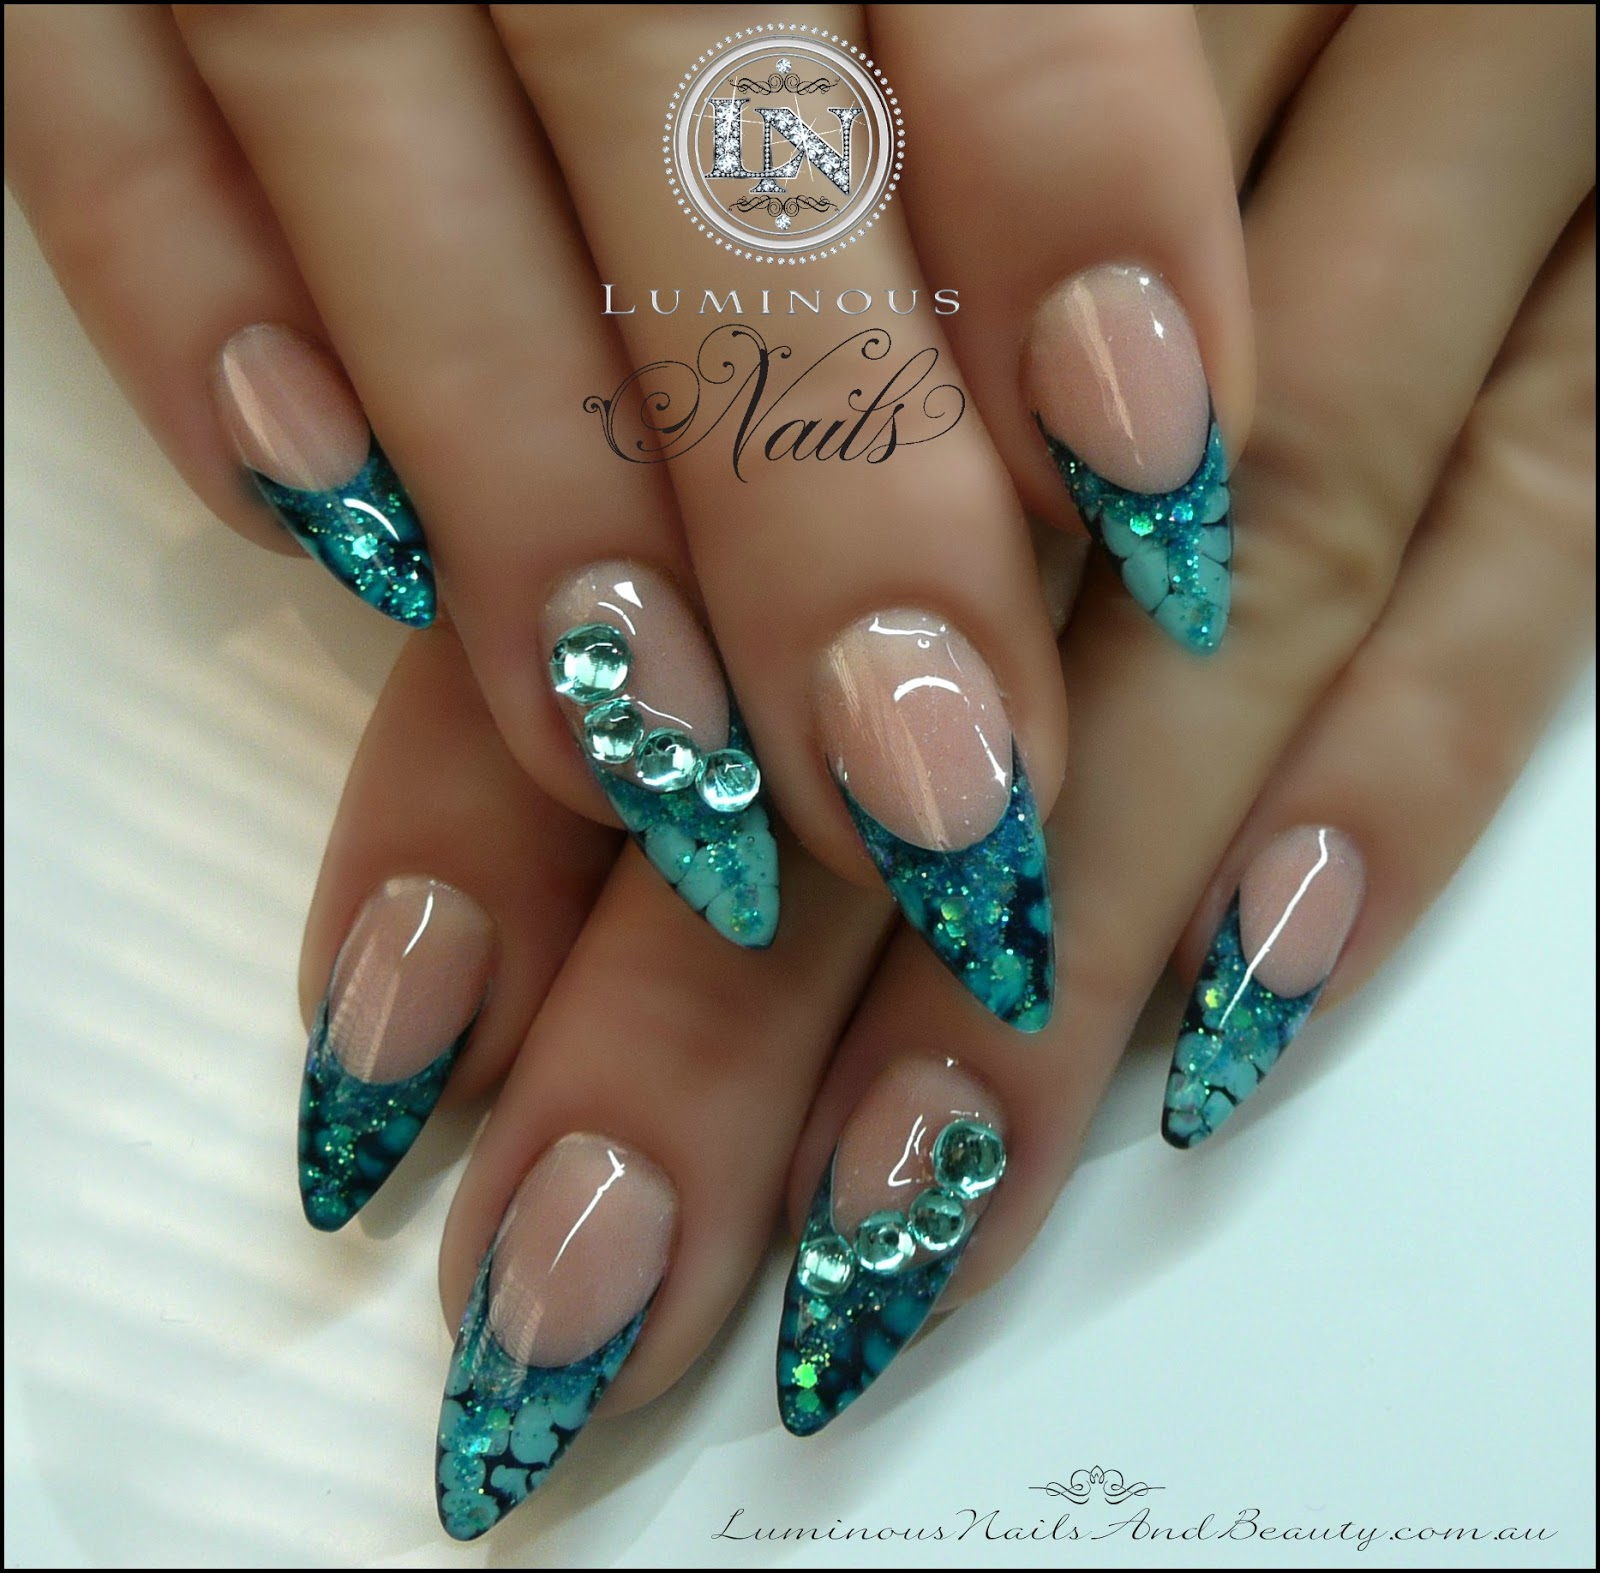 .+Acrylic+&+Gel+nails,+Spray+Tans.+Sculptured+Acrylic+with+Mani+Q+Gel